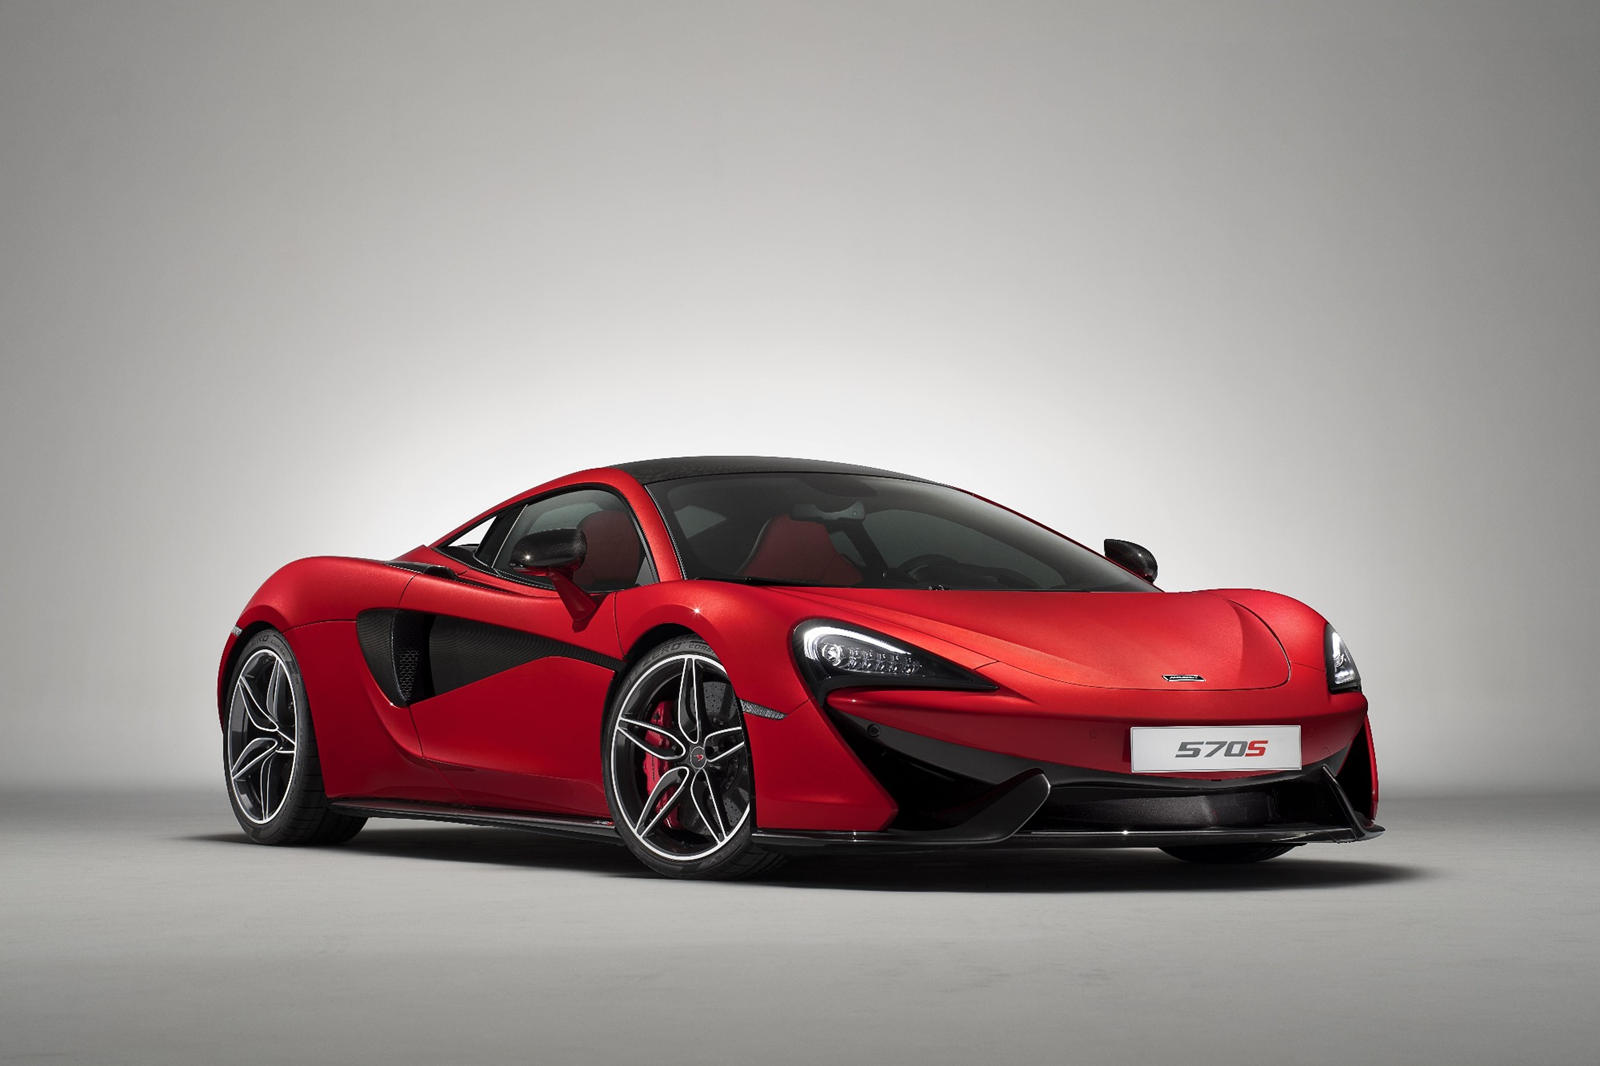 2018 McLaren 570S Coupe Review,Trims, Specs And Price